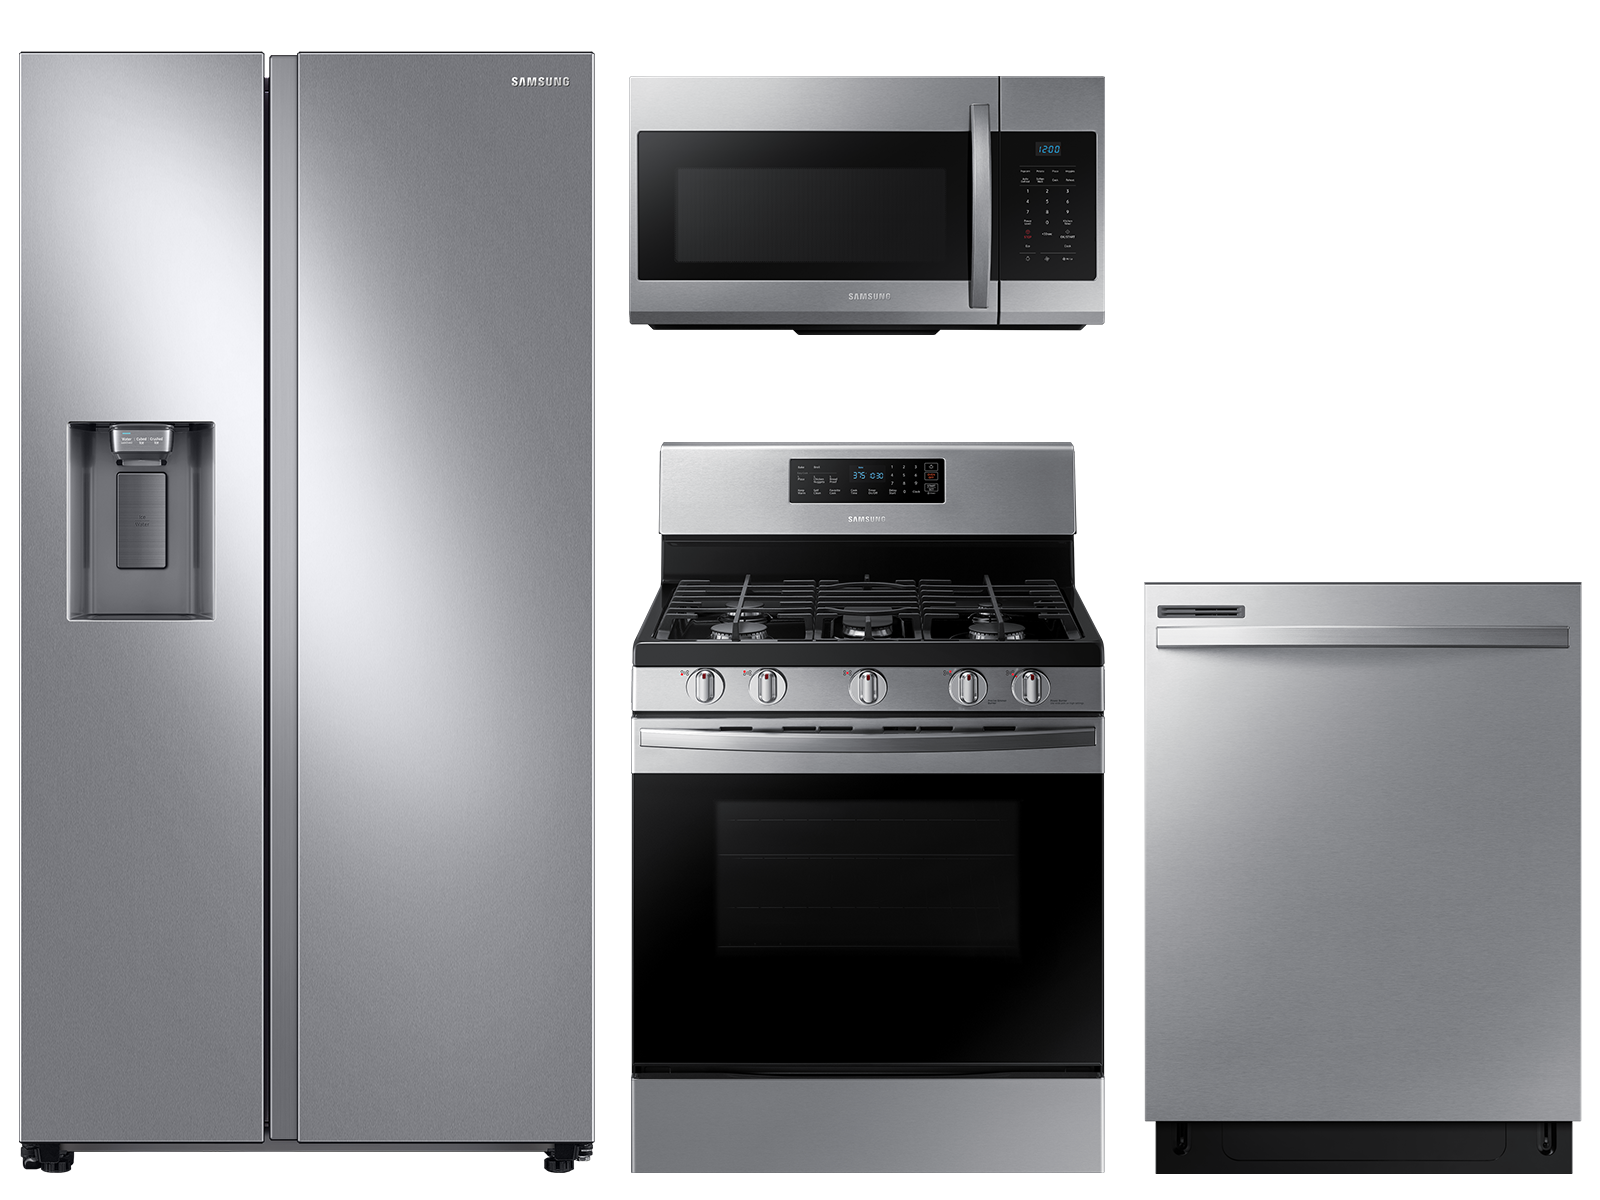 Samsung Large capacity Side-by-Side refrigerator & gas range package in stainless steel